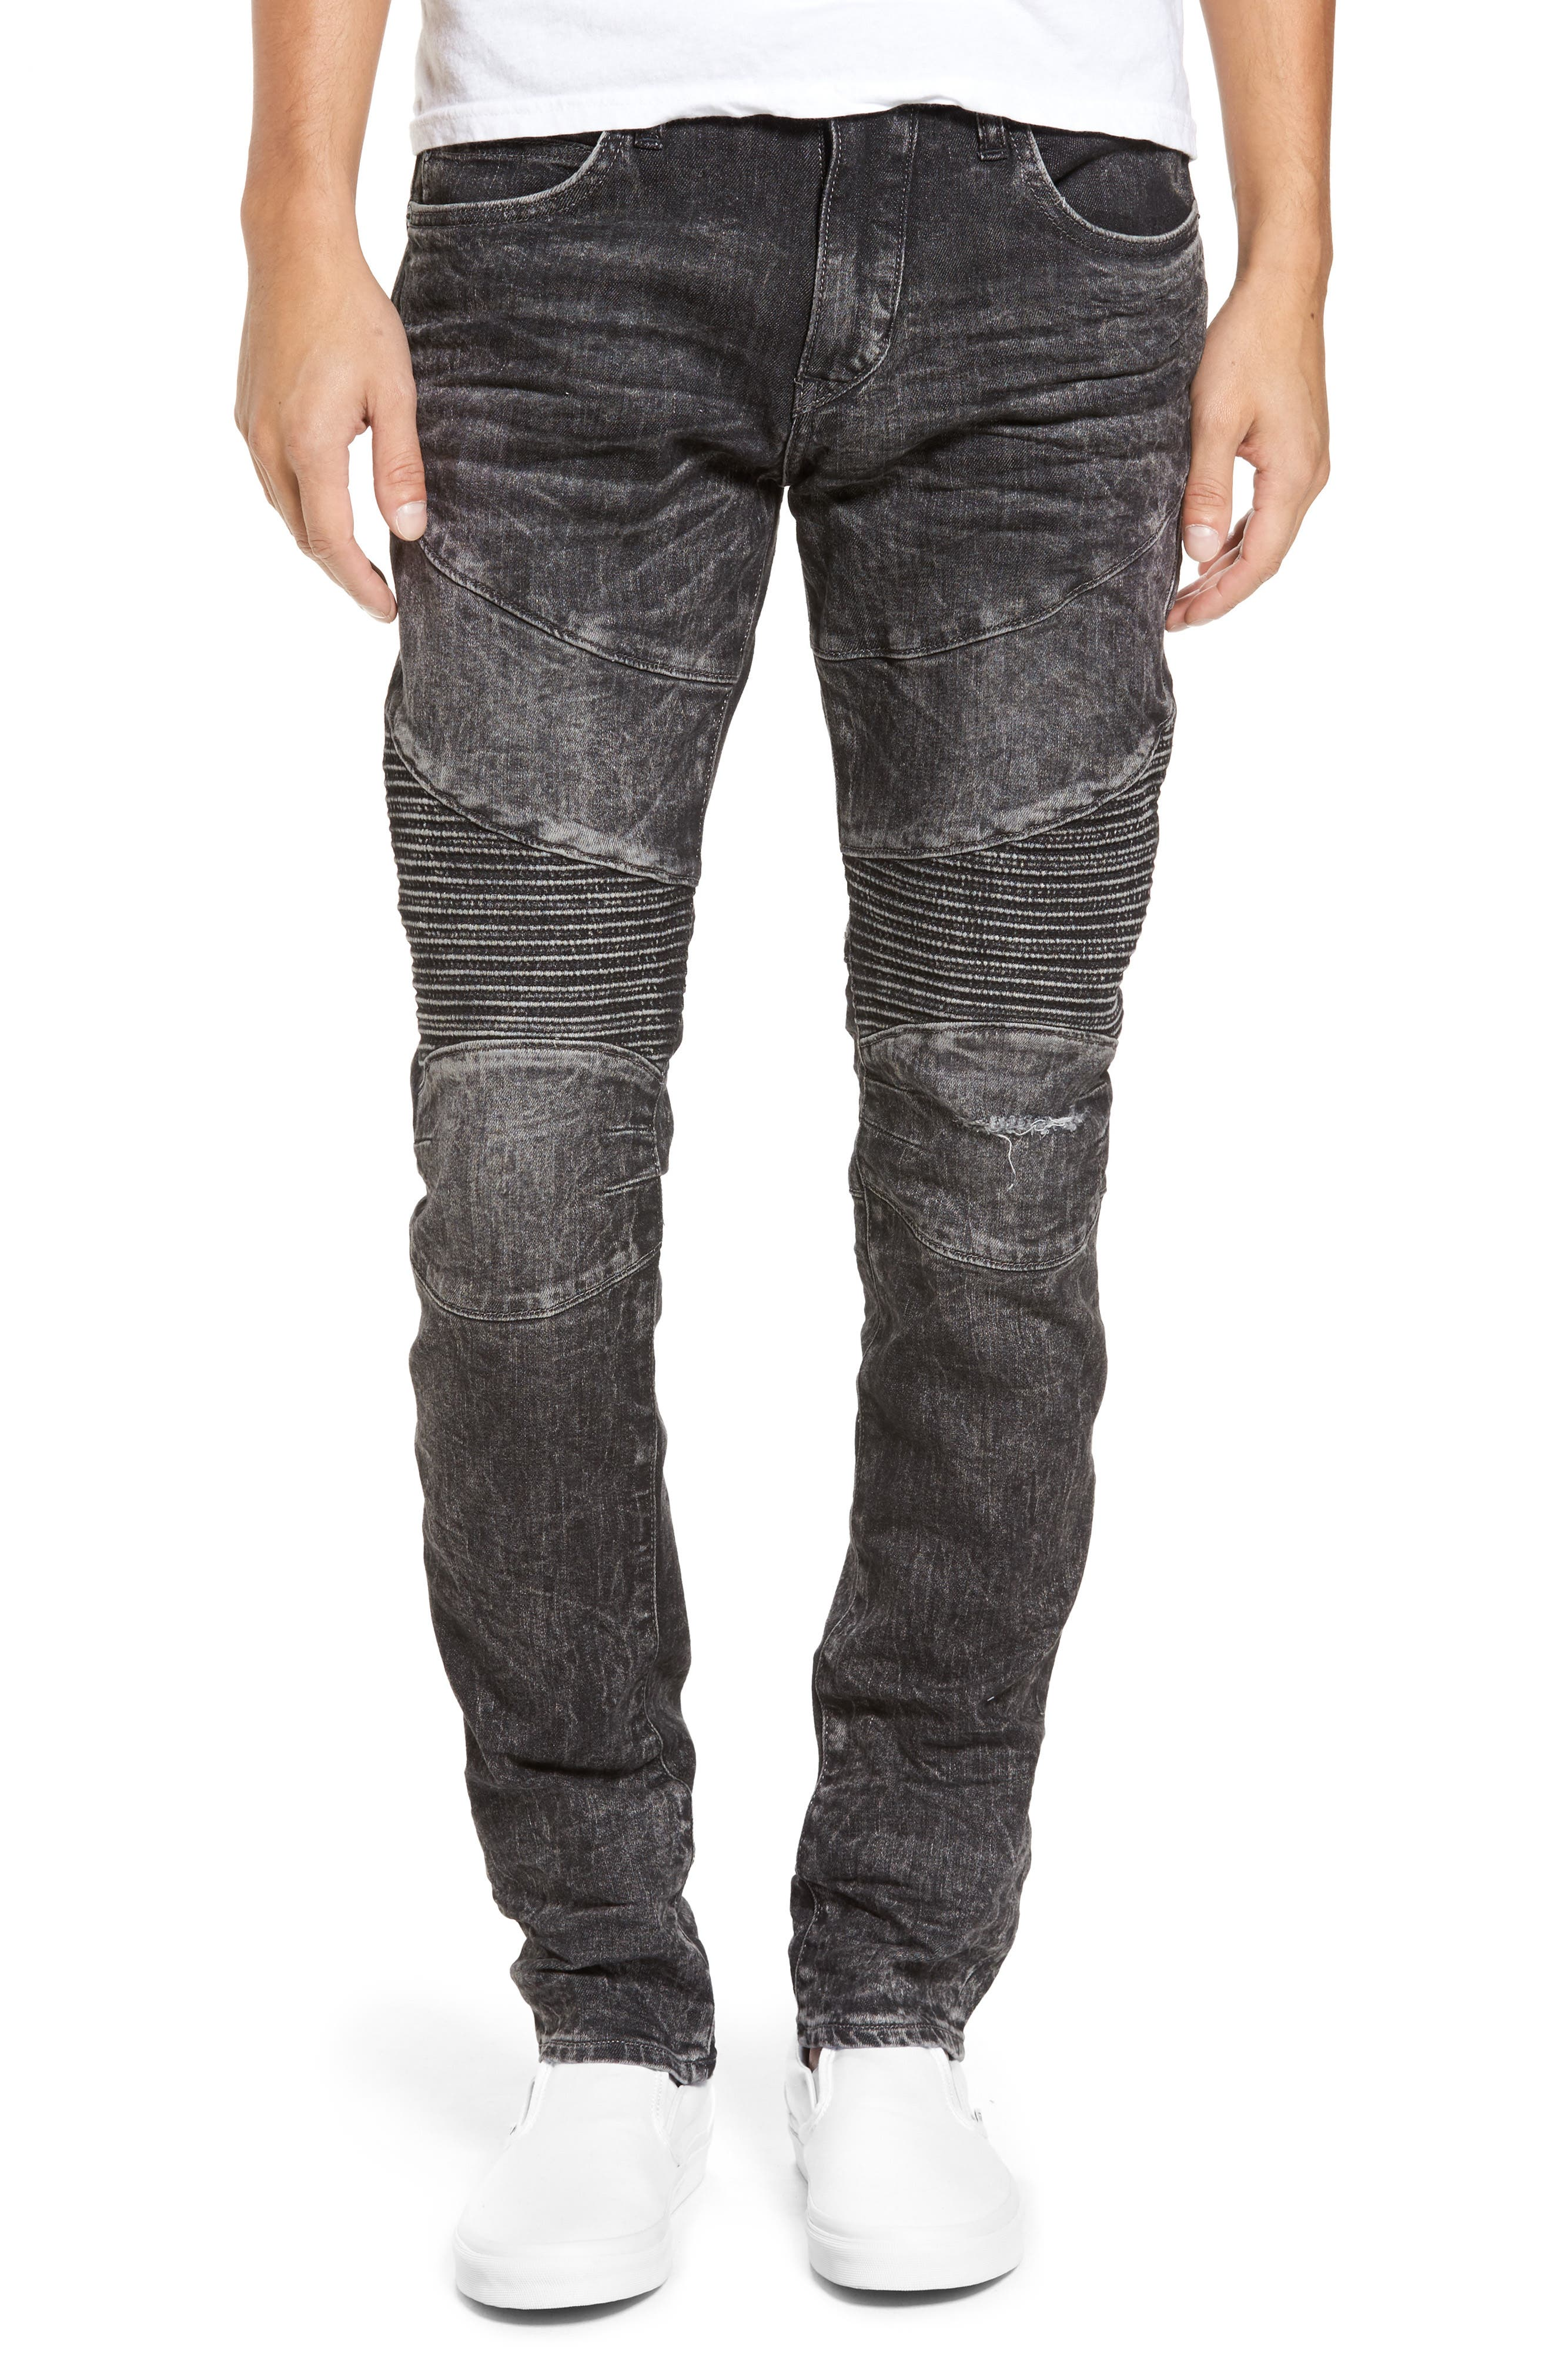 Men's Black Wash Jeans, Relaxed, Bootcut Fit & Selvedge Denim ...